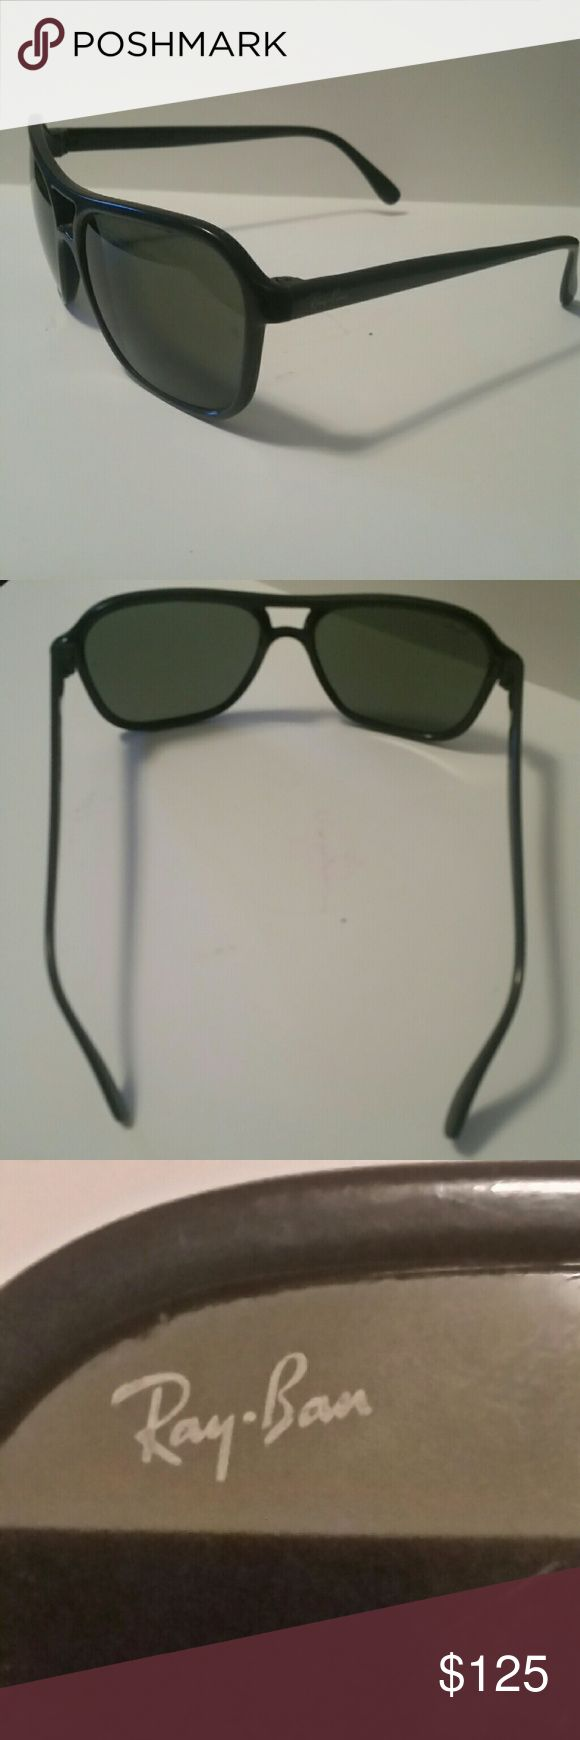 VINTAGE B&L RAY BAN L1588 SHINY BLK G15 UV SQUARE VINTAGE B&L RAY BAN L1588 SHINY BLACK G15 UV SQUARE CATS 4000 SKI SUNGLASSES  These are authentic and no scratches, great condition, shipped out several day as purchased, comes with microfiber cleaning cloth. Get these vintage and rare sunglasses before they are gone. They have grey lenses which help cut glare and make driving easier. Plus they look cool. Ray-Ban Accessories Sunglasses